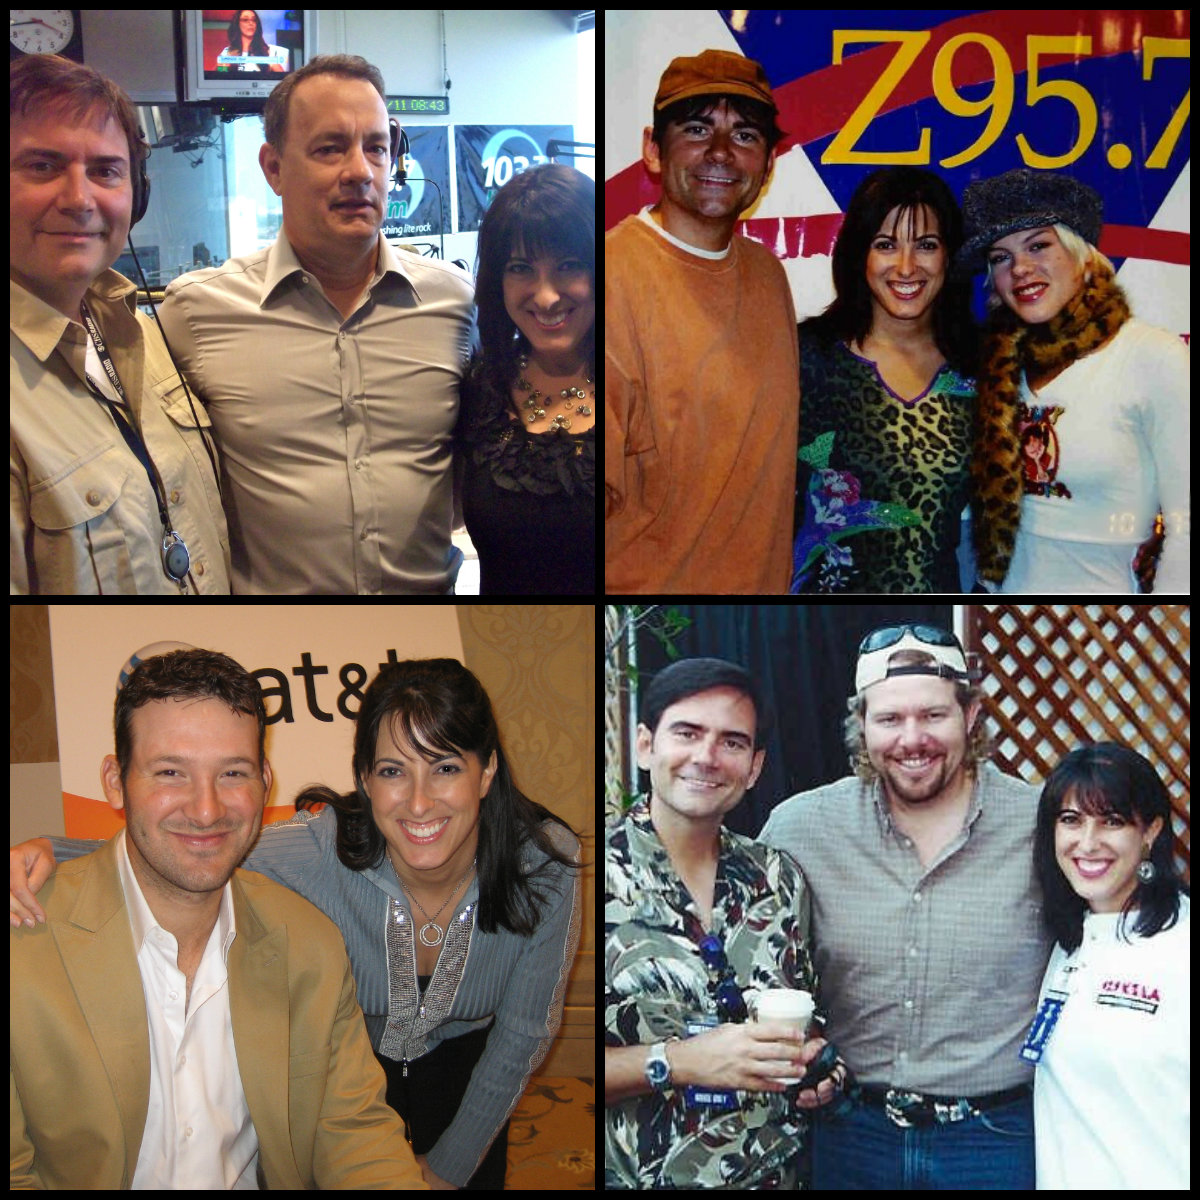 Some fun guests on The Gene & Julie Show over the years... Academy Award winner Tom Hanks, Grammy Award winner P!nk, Dallas Cowboys Quarterback Tony Romo and CMA winner Toby Keith